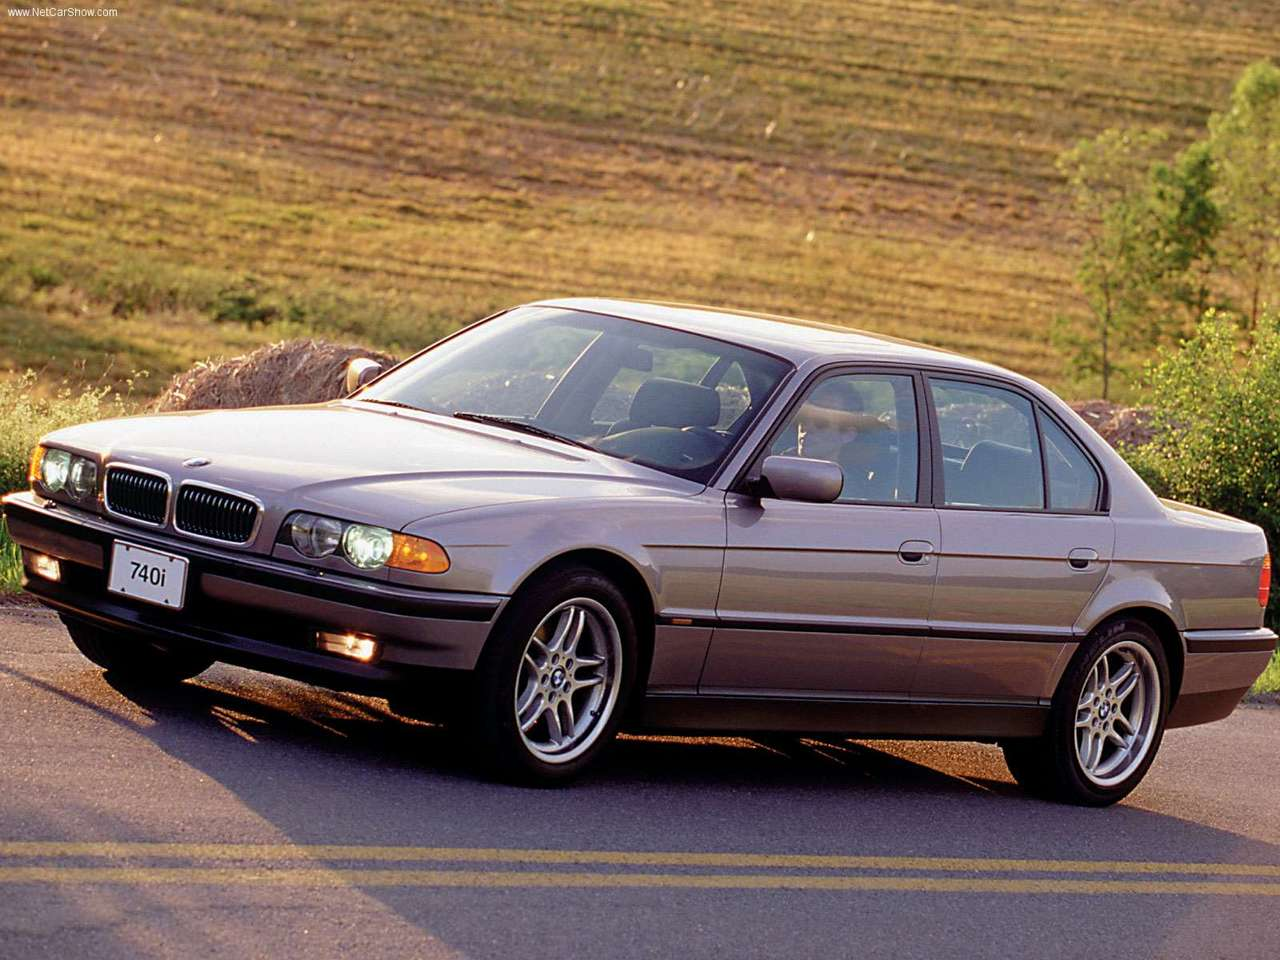 small resolution of 2000 bmw 740i the e38 generation 1995 2001 had a five speed automatic or manual transmission the engine variants in europe were 725tds 728i 730i